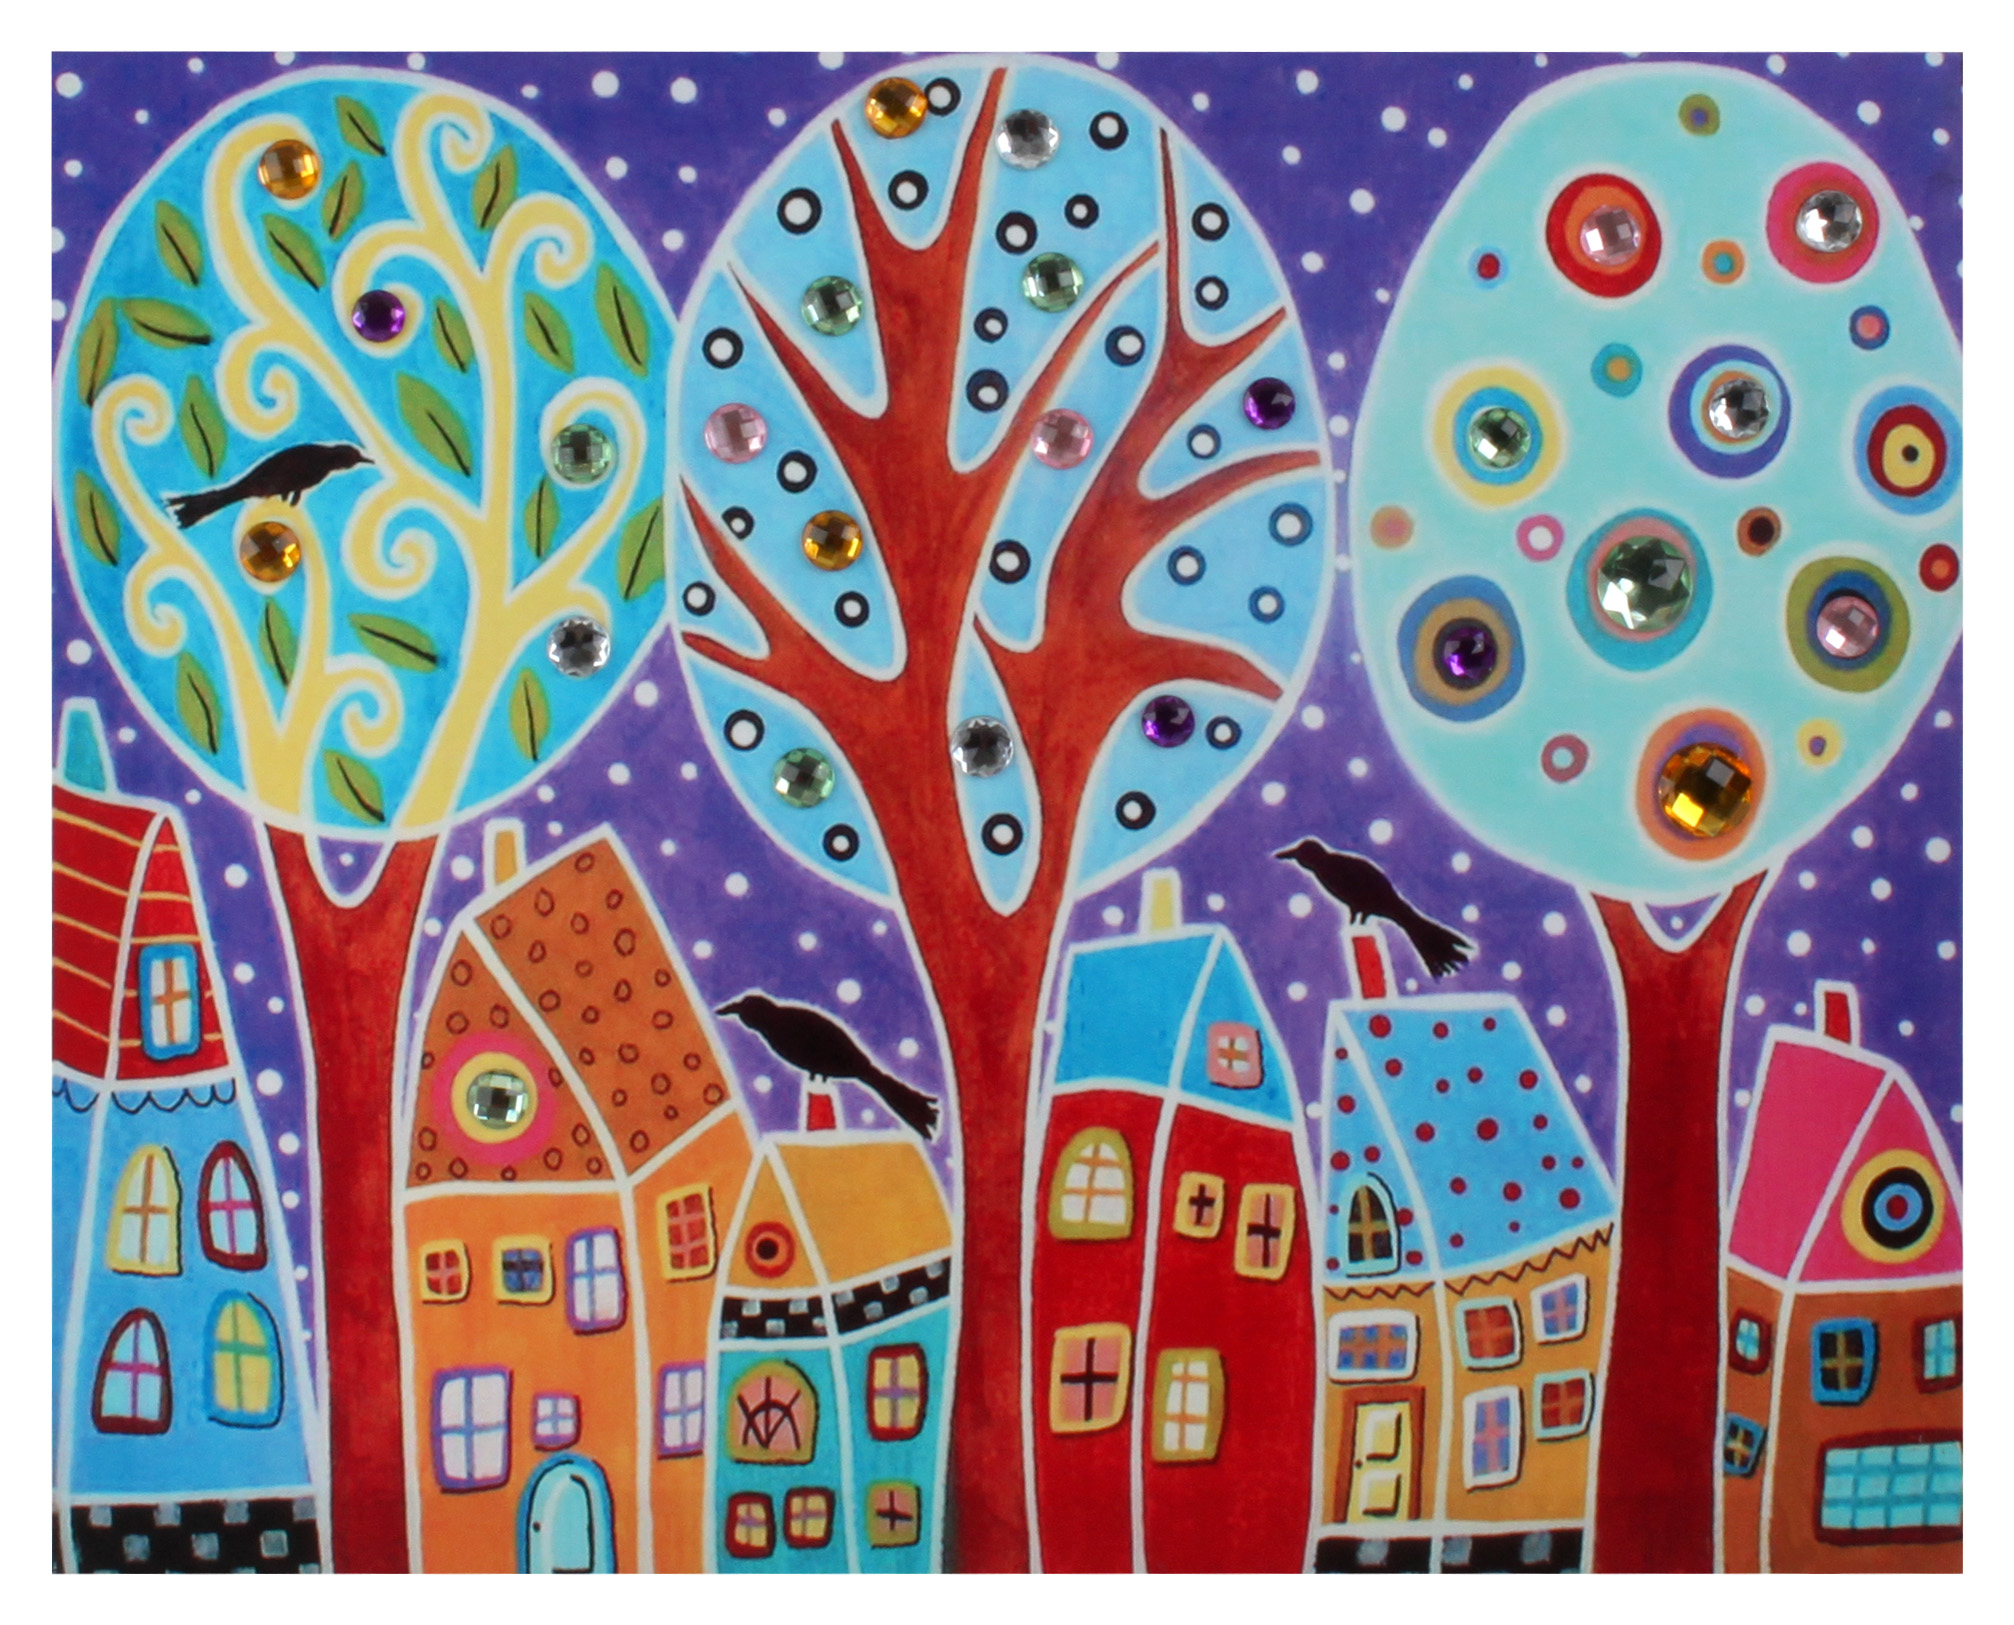 €15 WALL PAINTING PRINTED CANVAS W/STONES 50Χ2Χ40